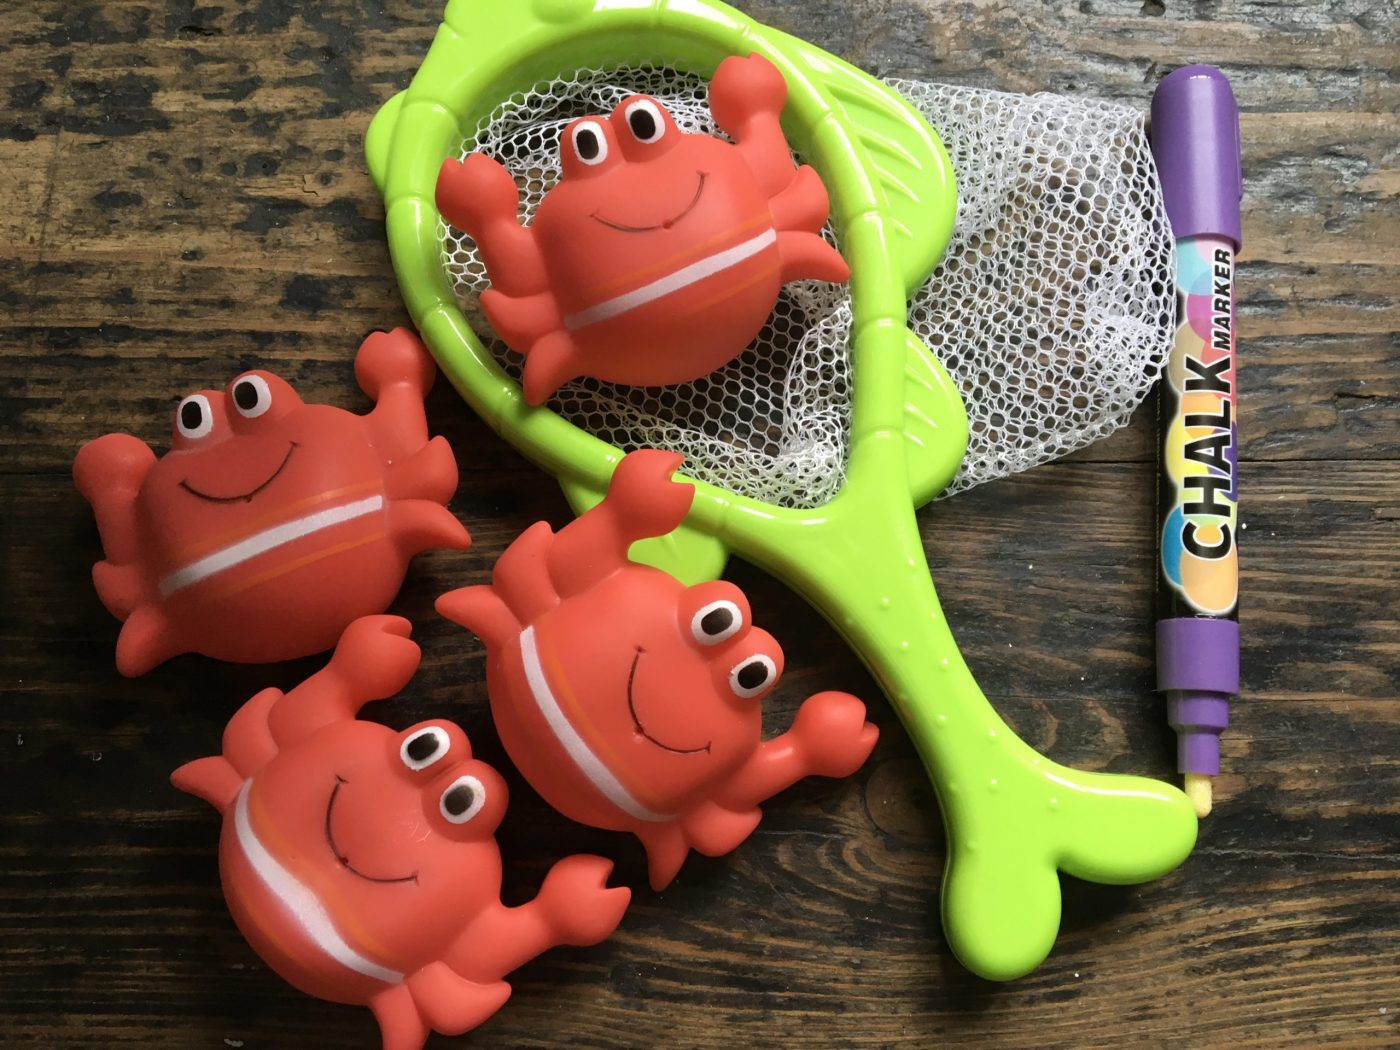 Phonics bath toys For active, play based learning